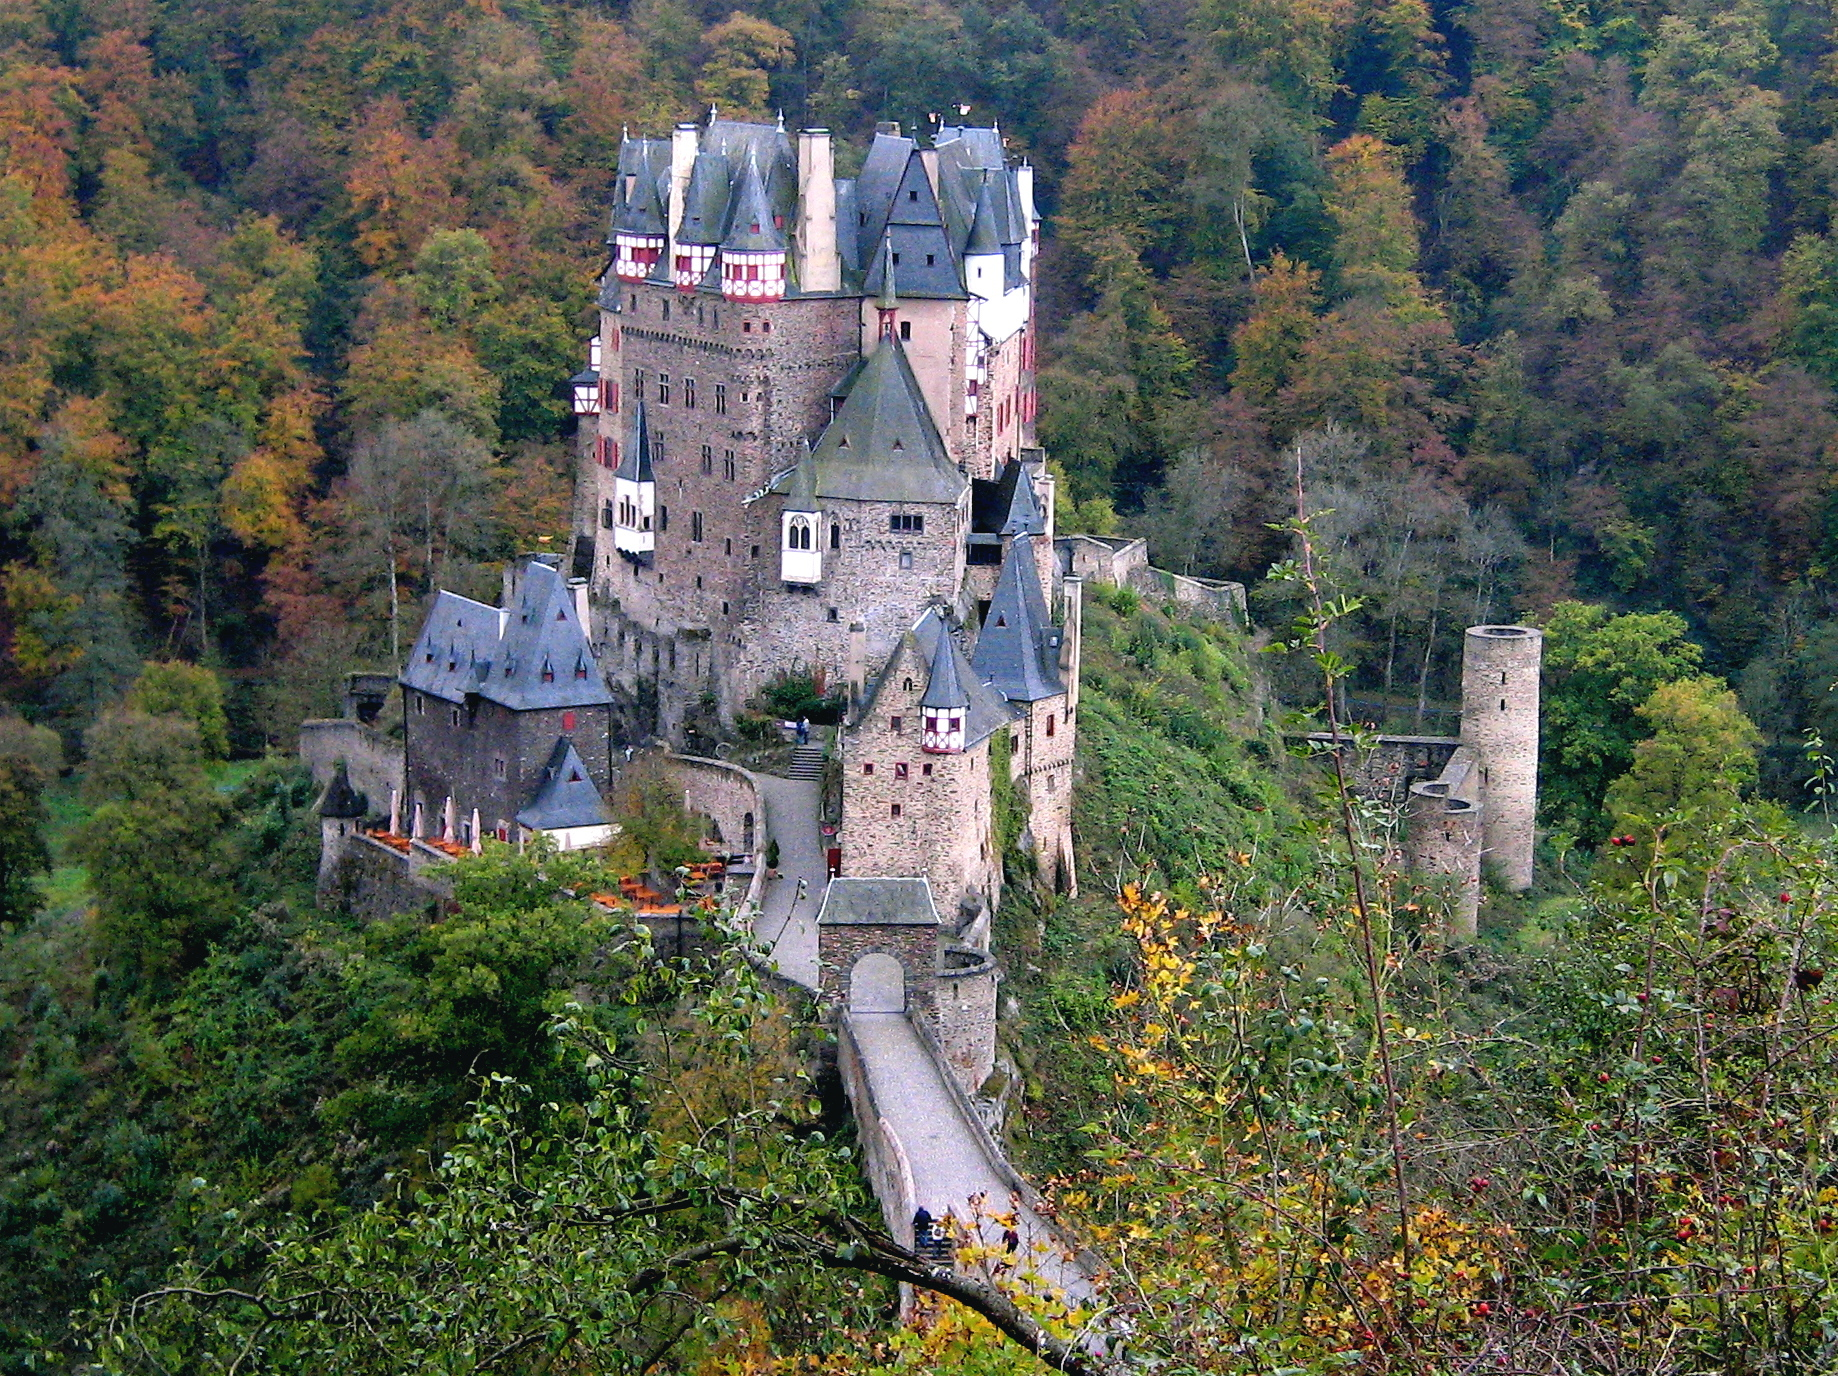 Burg Eltz The Moselle Valley, Eltz Castle: Home of the Knights | A Pakistani in the Bundesrepublik